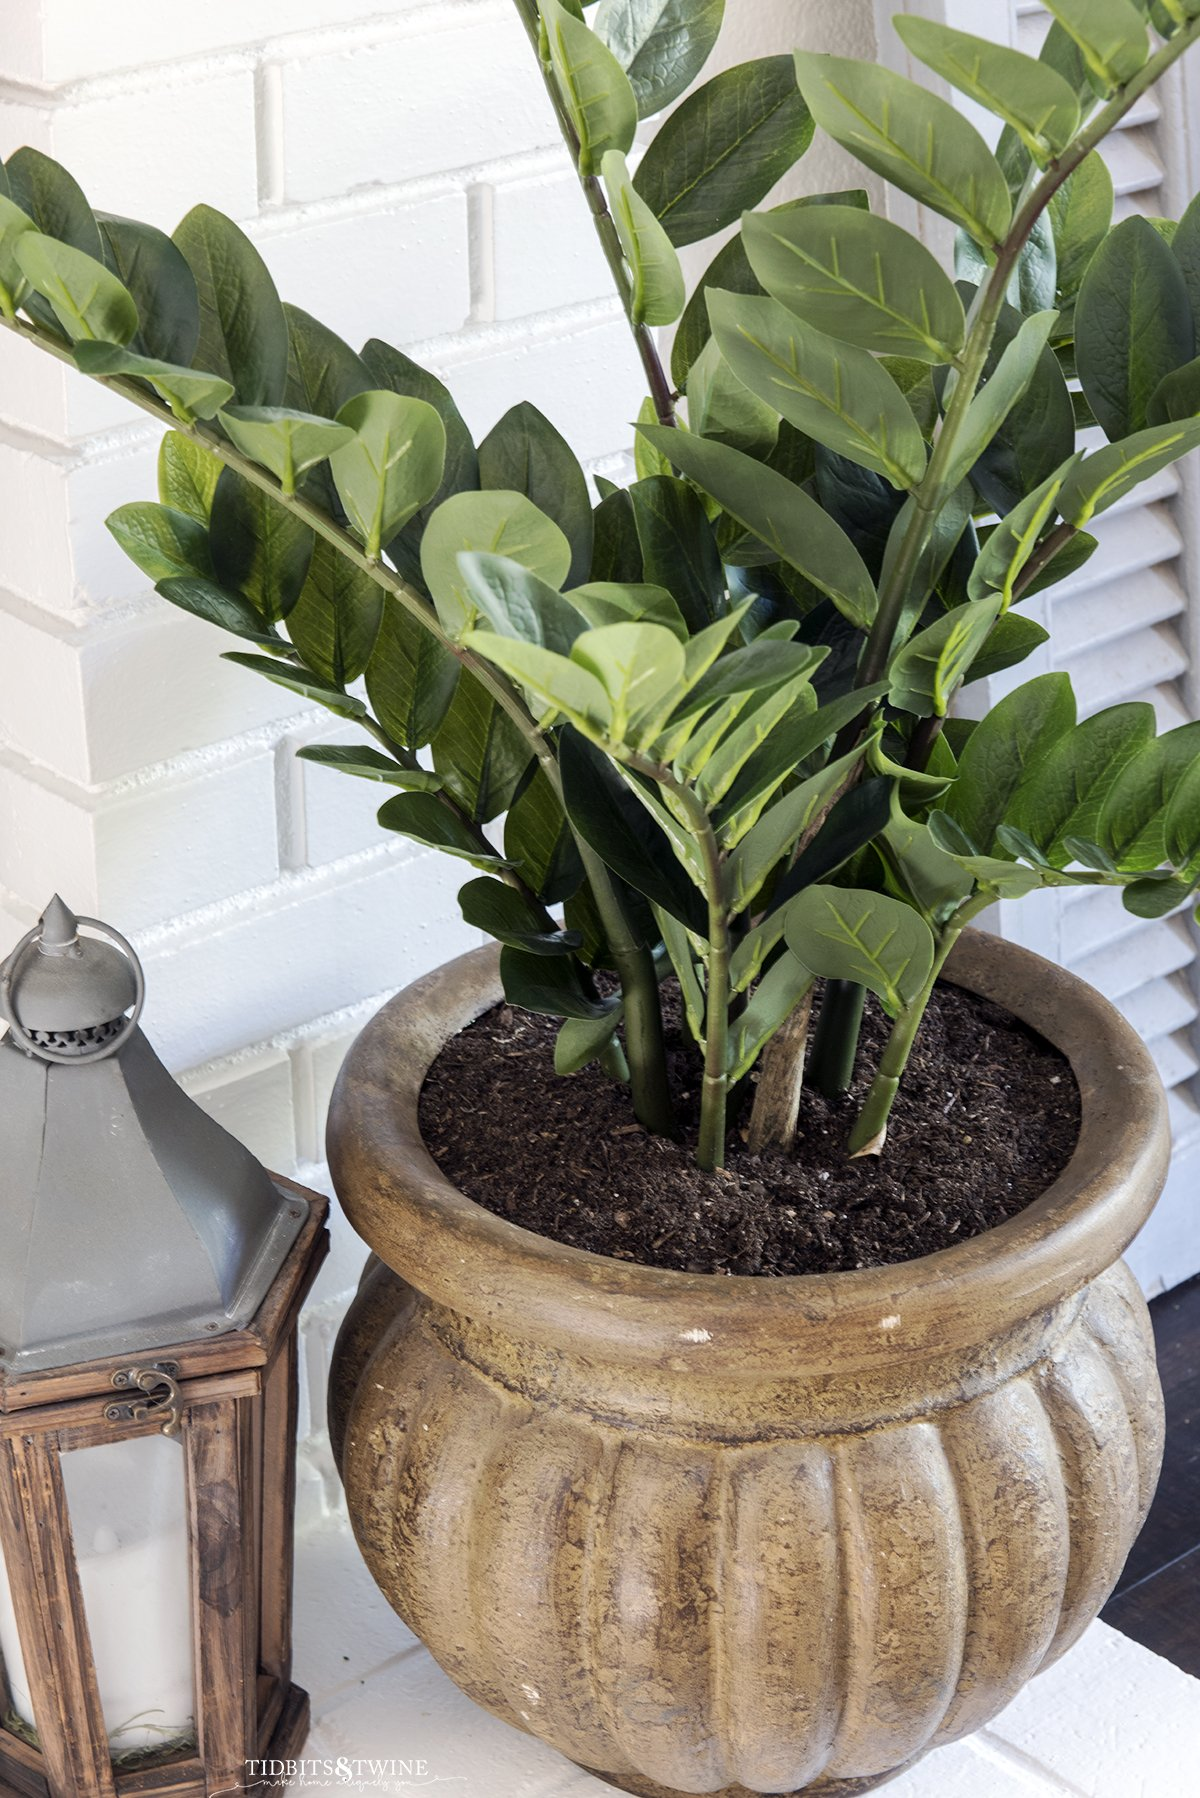 zz plant in a brown pot on white brick fireplace next to small lantern with blue shutter in background